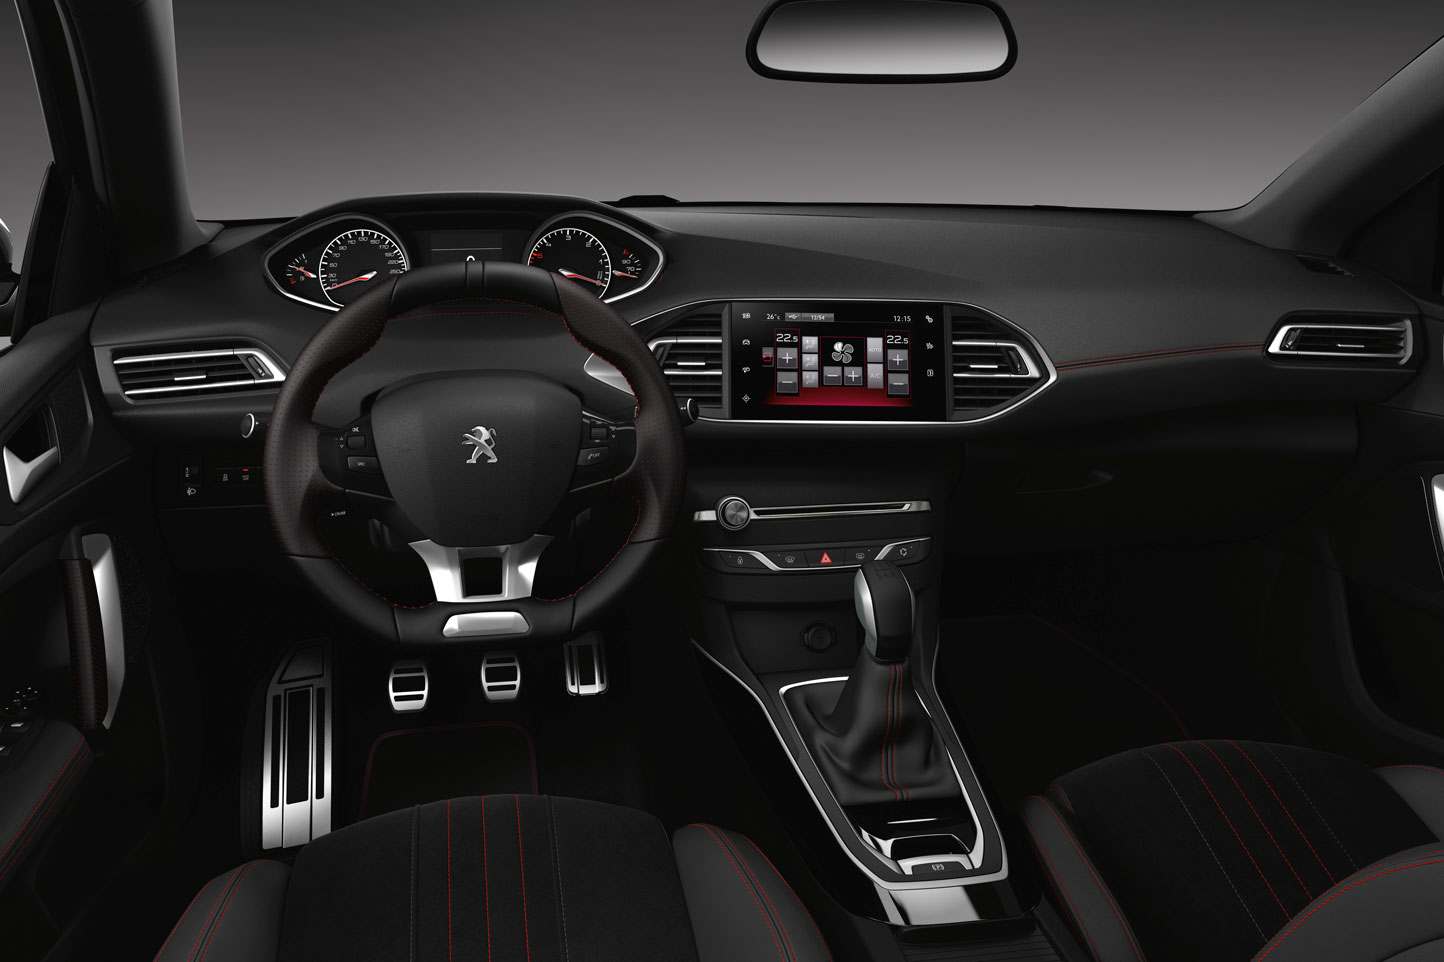 fiche technique peugeot 308 sw gt hdi 2015. Black Bedroom Furniture Sets. Home Design Ideas